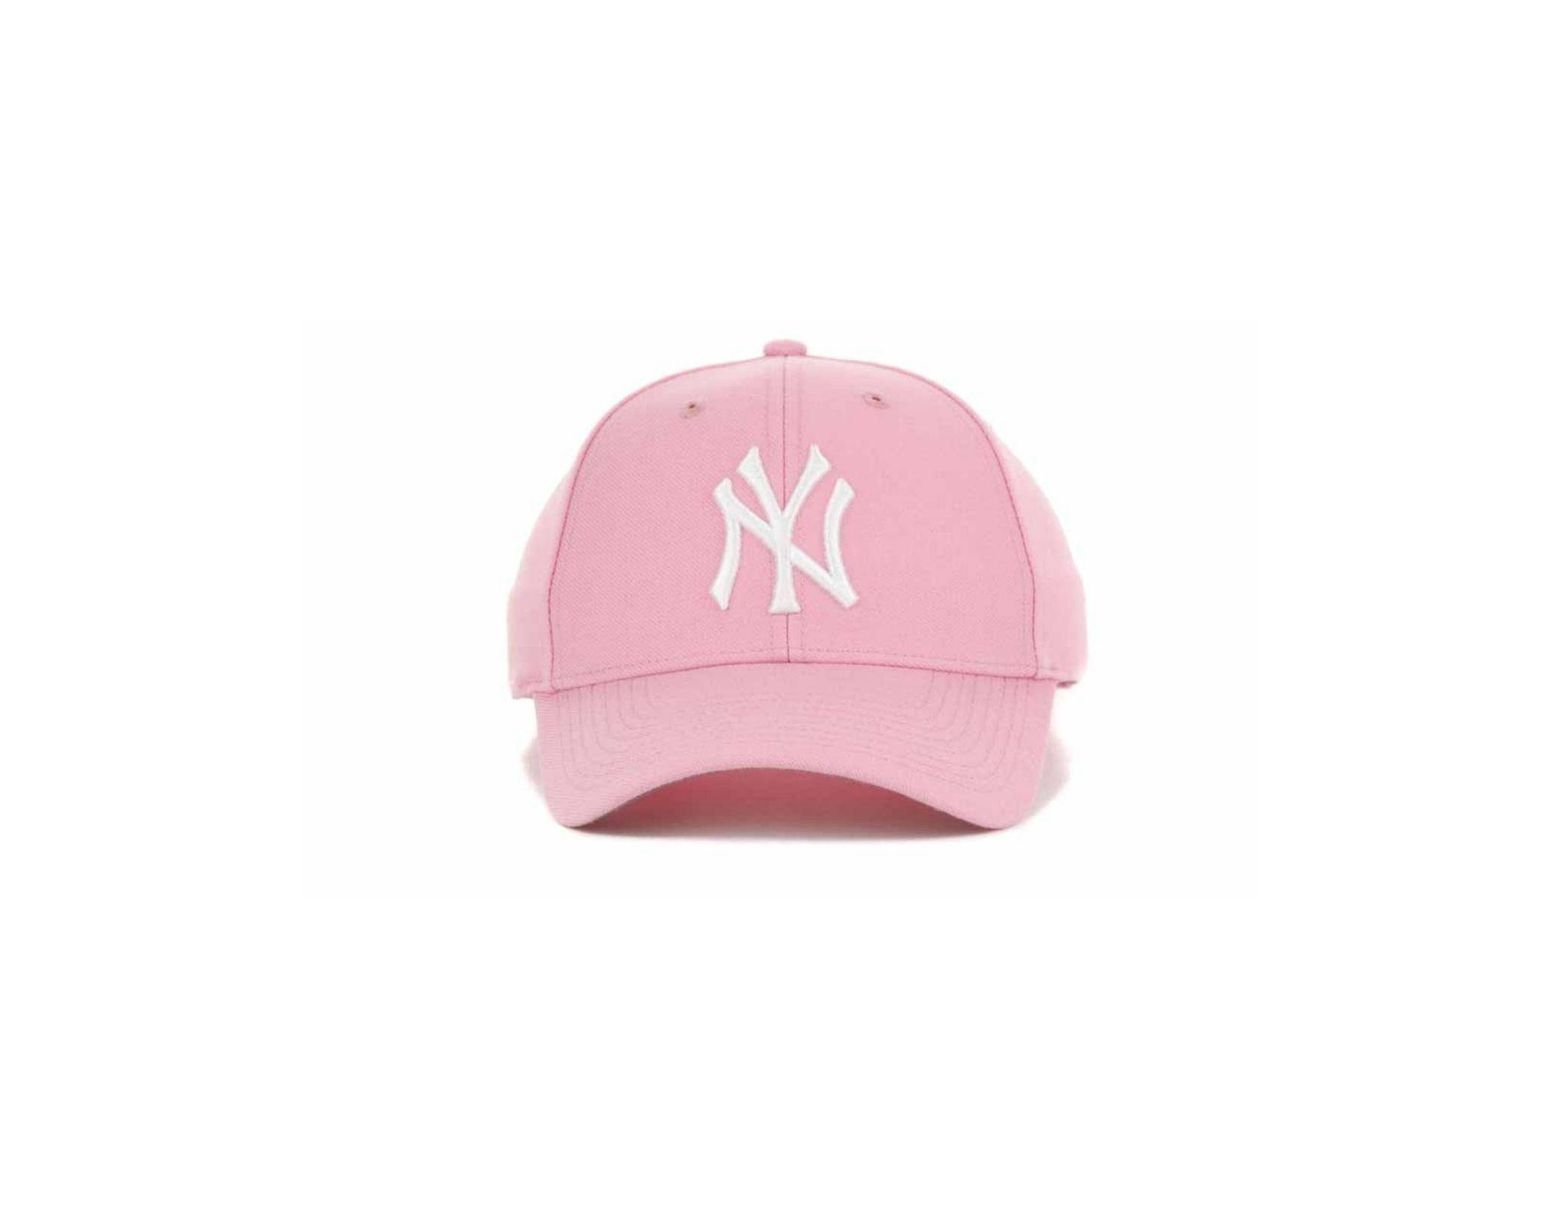 a6cfc7fac19343 47 Brand New York Yankees Mvp Curved Cap in Pink - Lyst